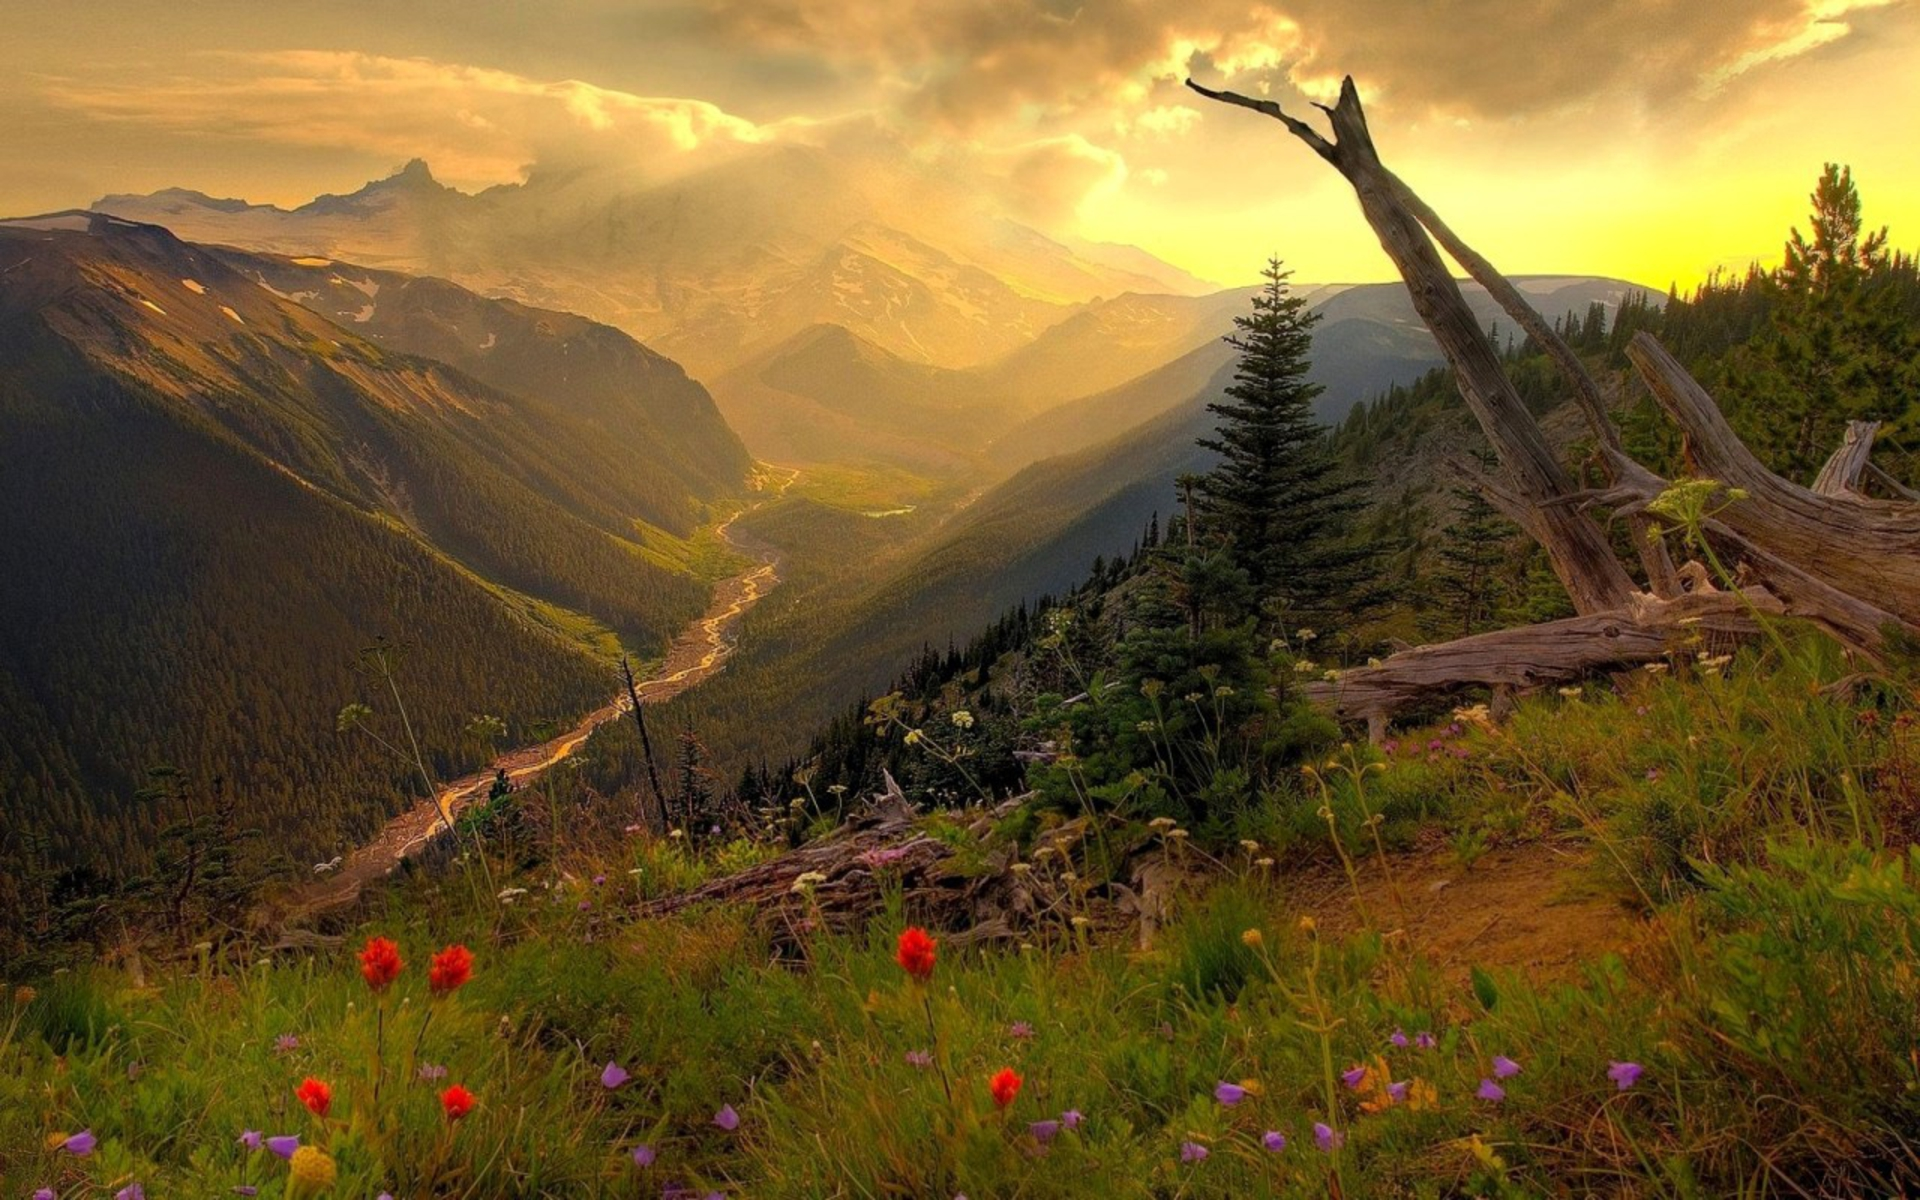 DOWNLOAD: Mountain Valley flowers.jpg free picture 2560 x 1600